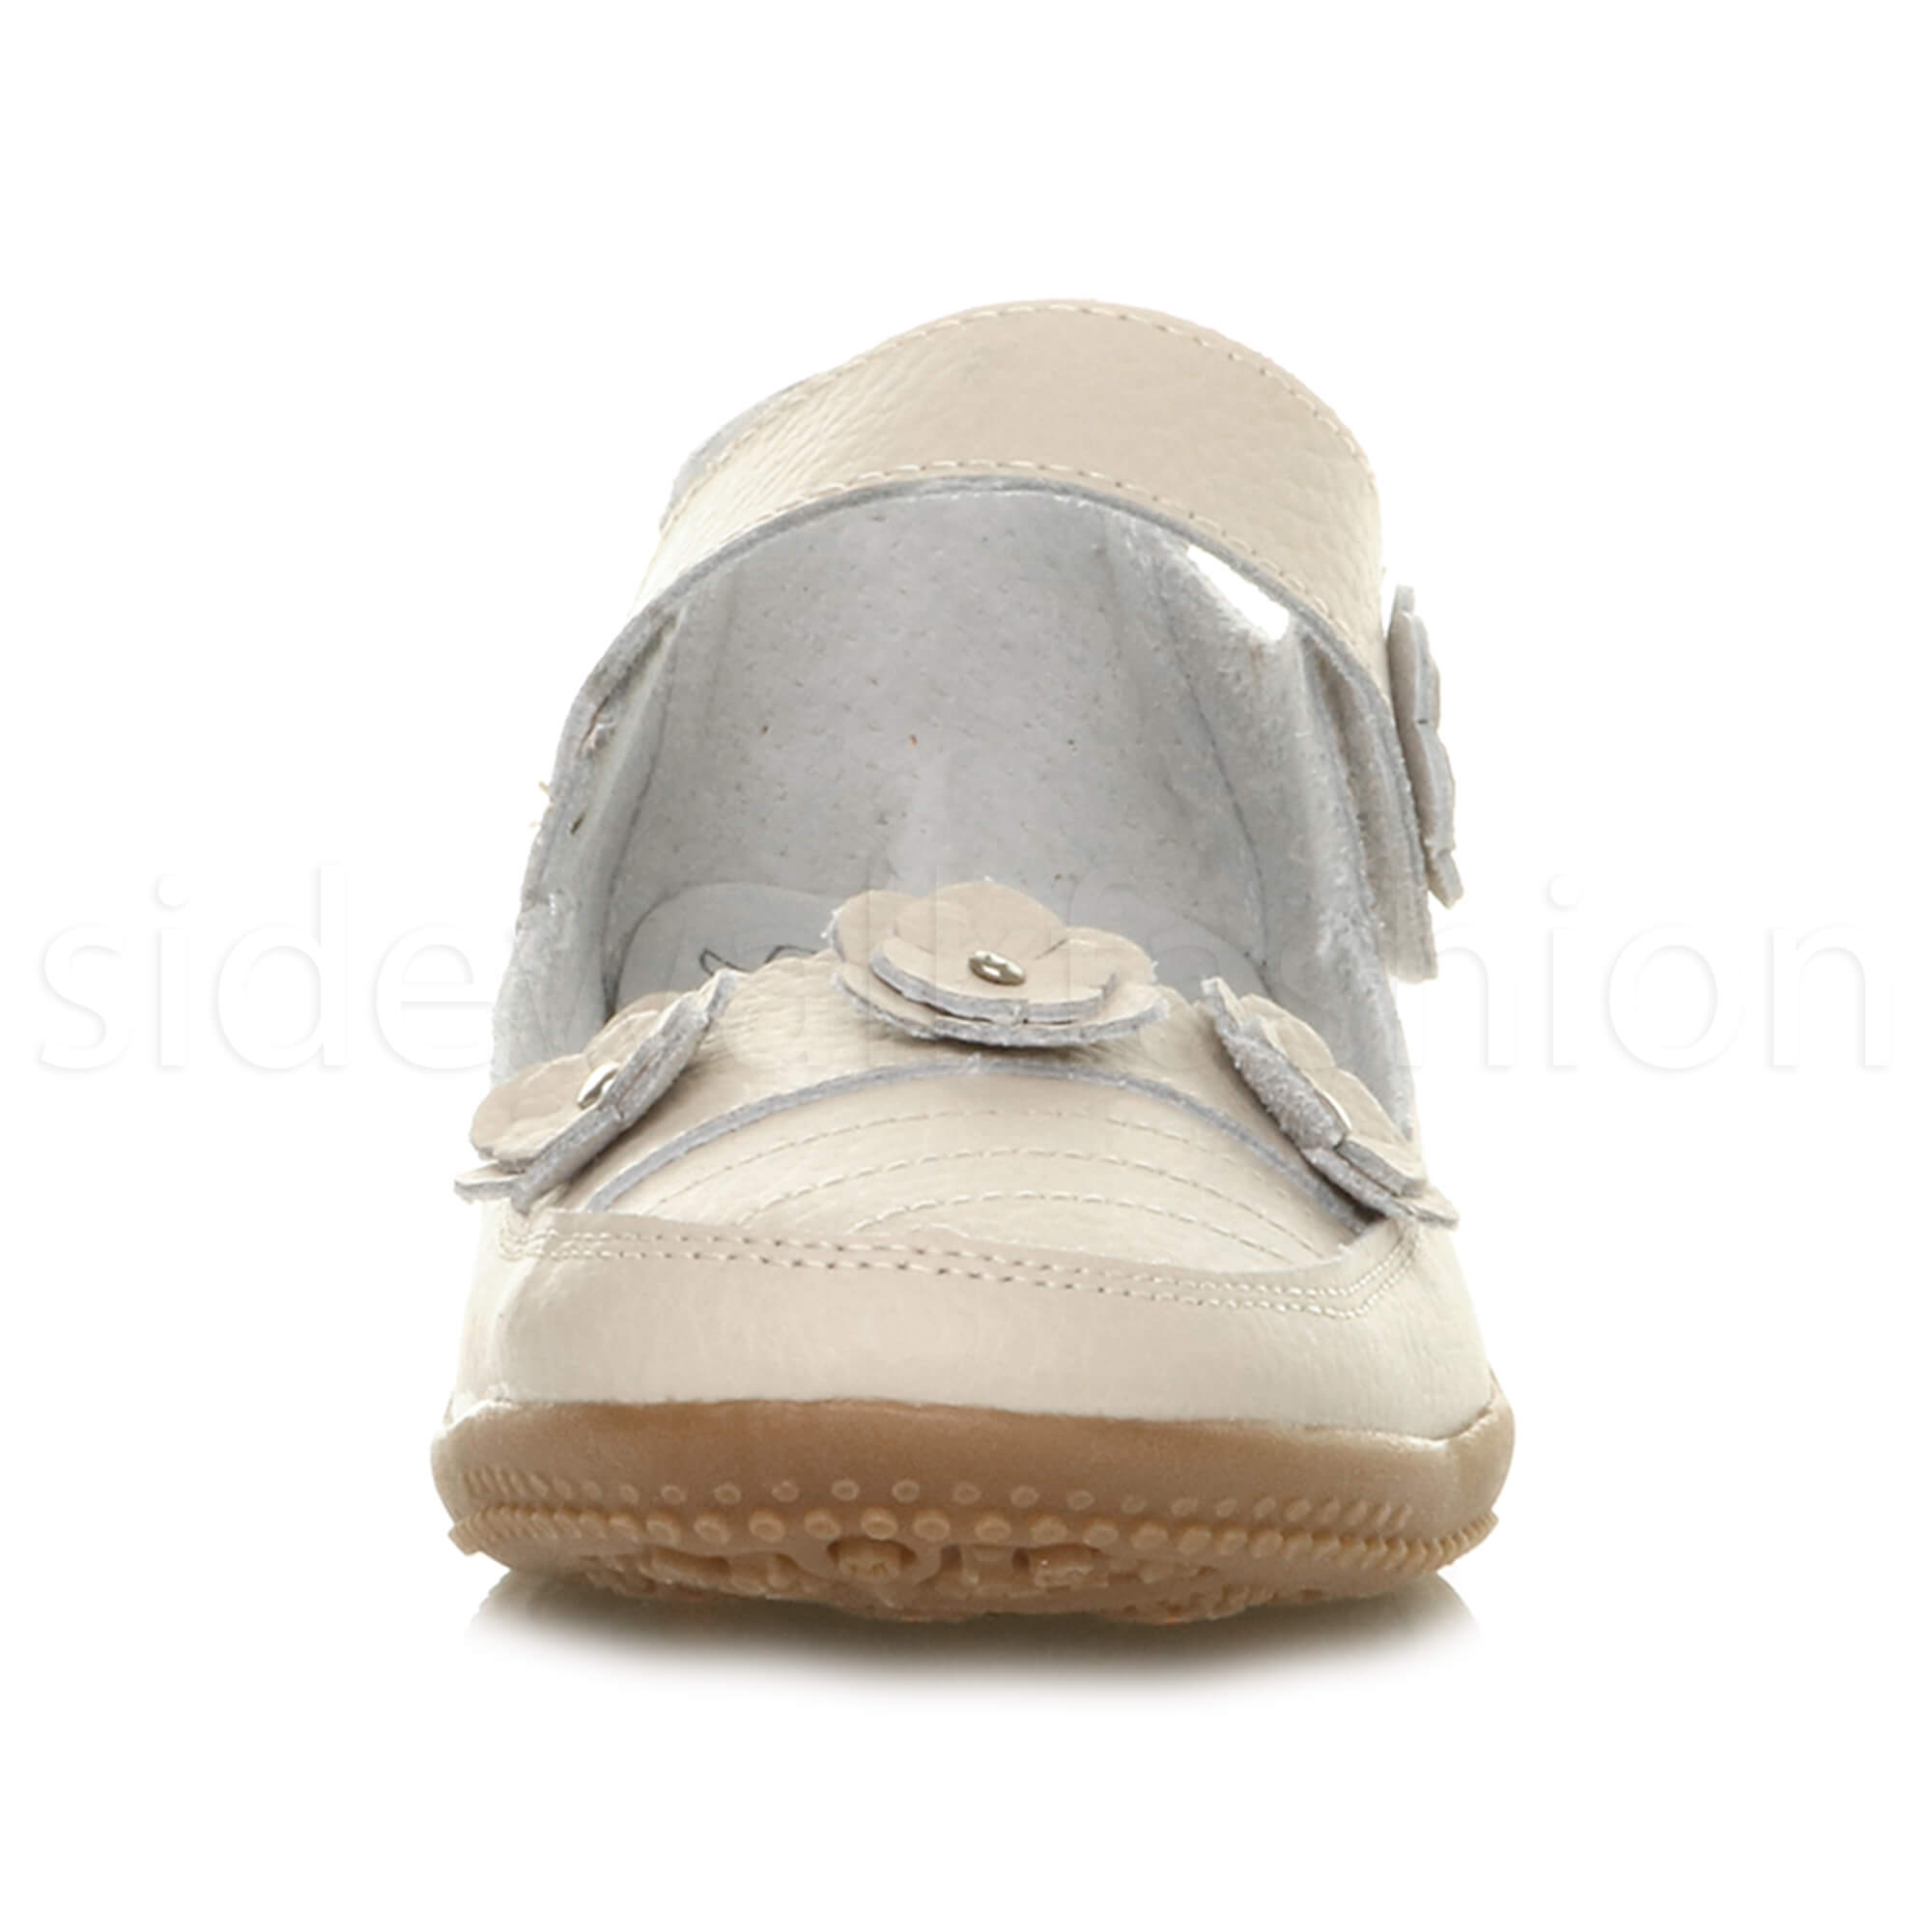 Womens-ladies-leather-comfort-walking-casual-sandals-mary-jane-strap-shoes-size thumbnail 41